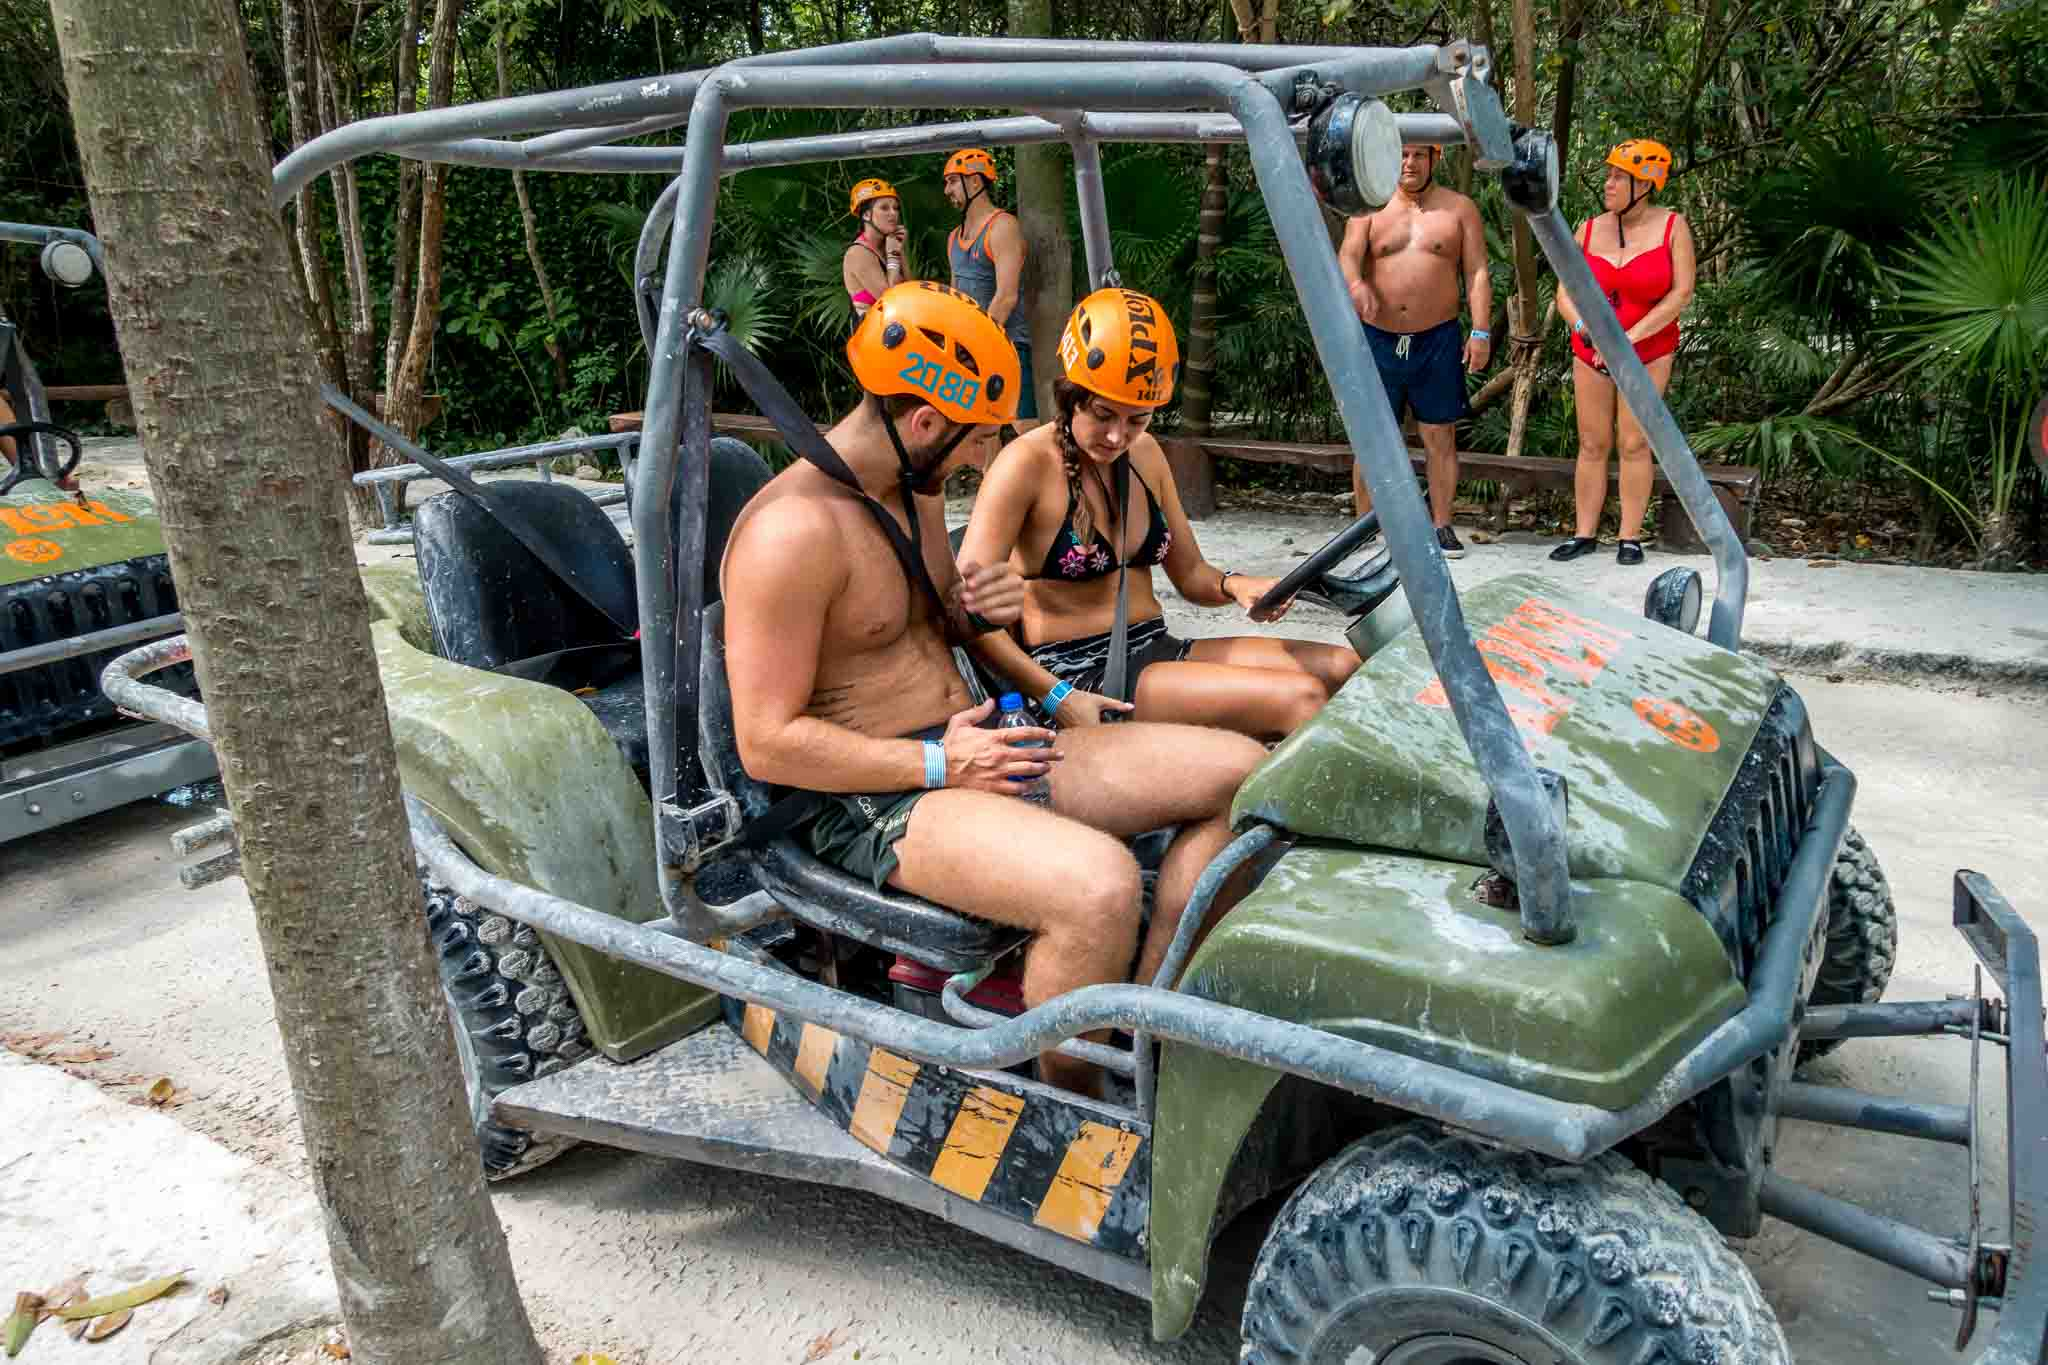 People fastening seatbelts in their amphibious vehicle